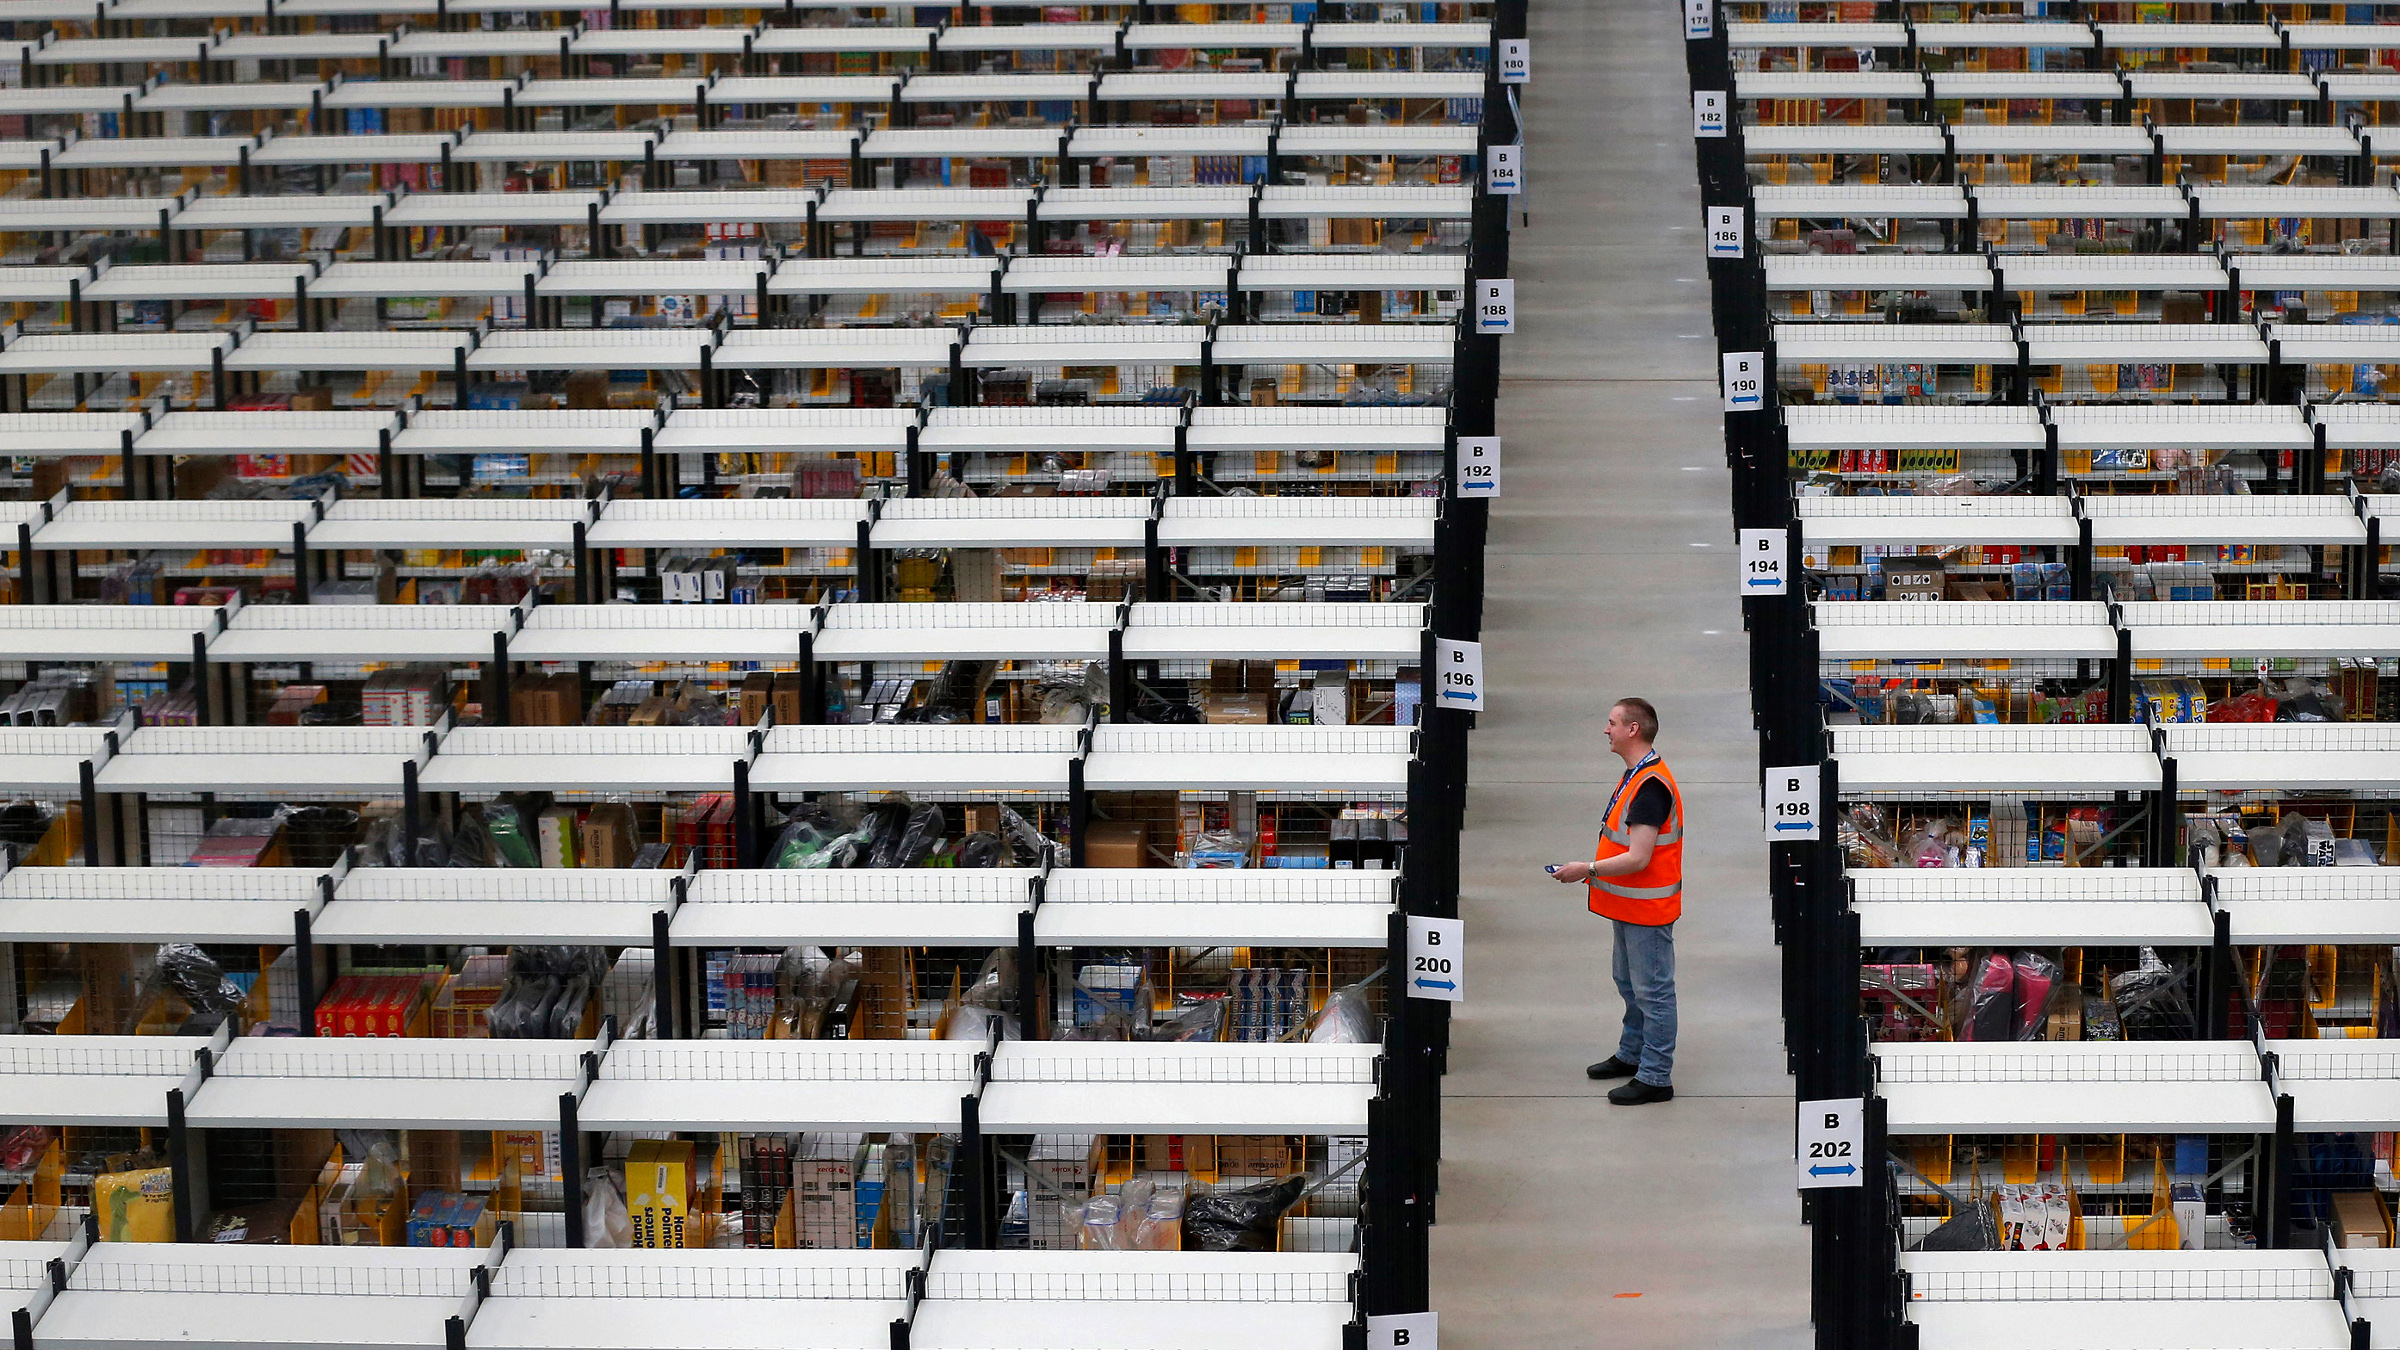 Workers collect orders at Amazon's fulfilment centre in Rugeley, central England December 11, 2012.